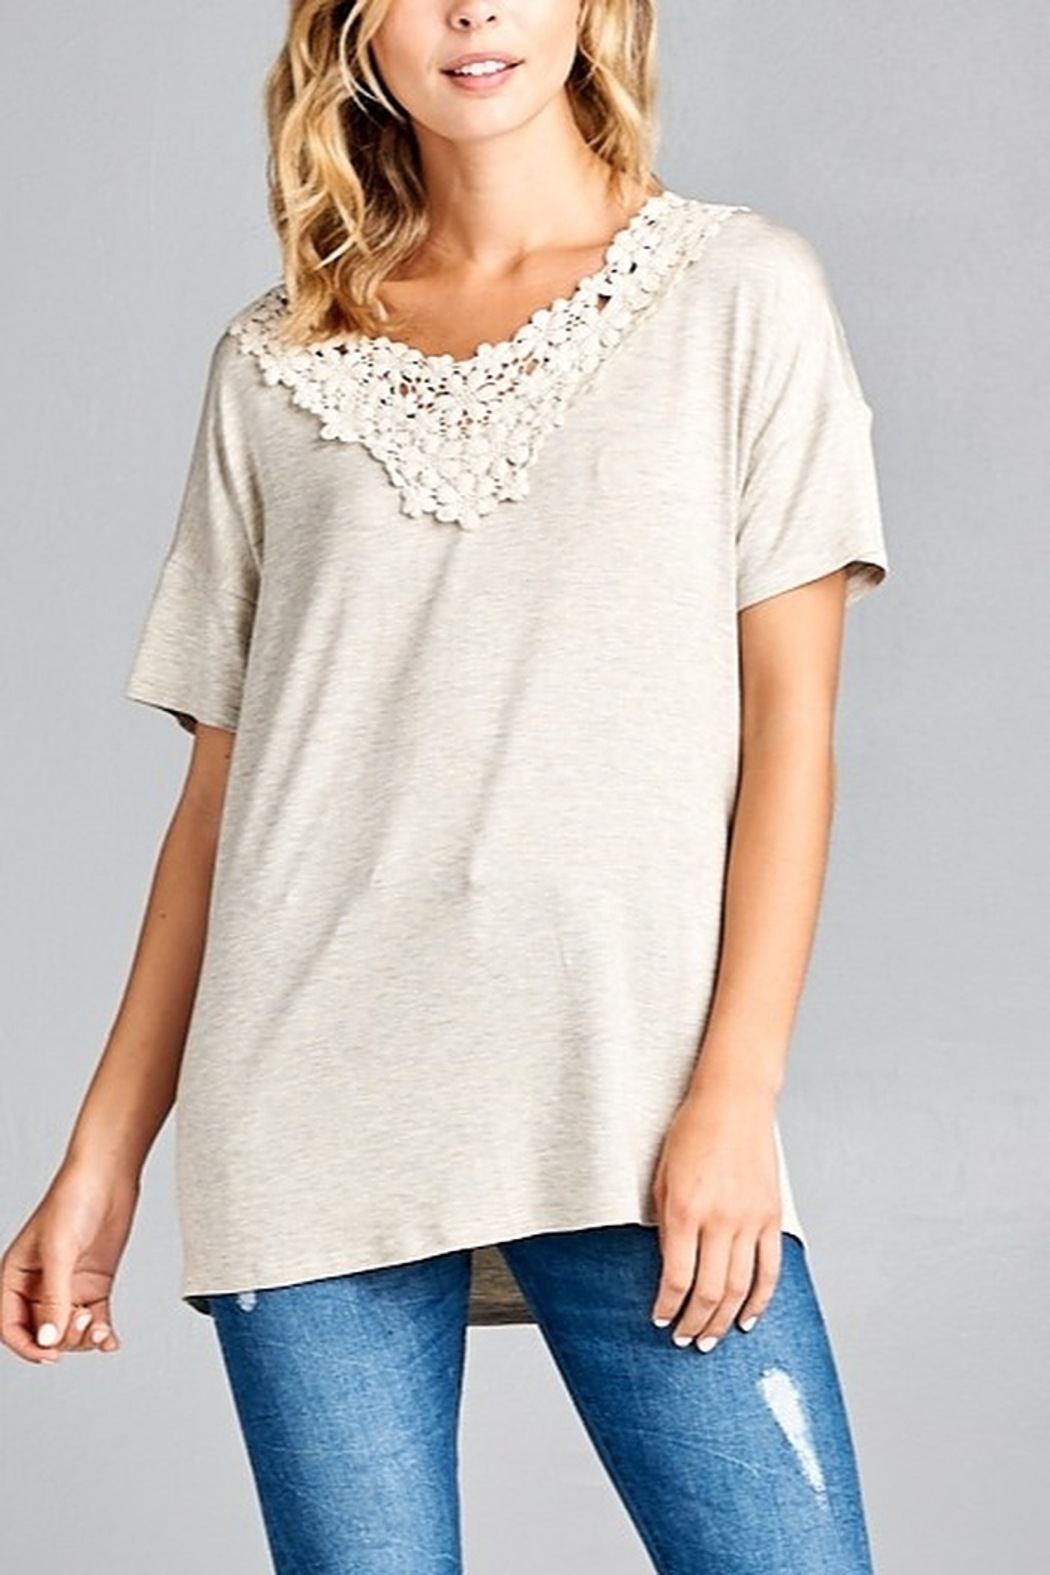 Lyn-Maree's  Lace Neck Tee - Main Image